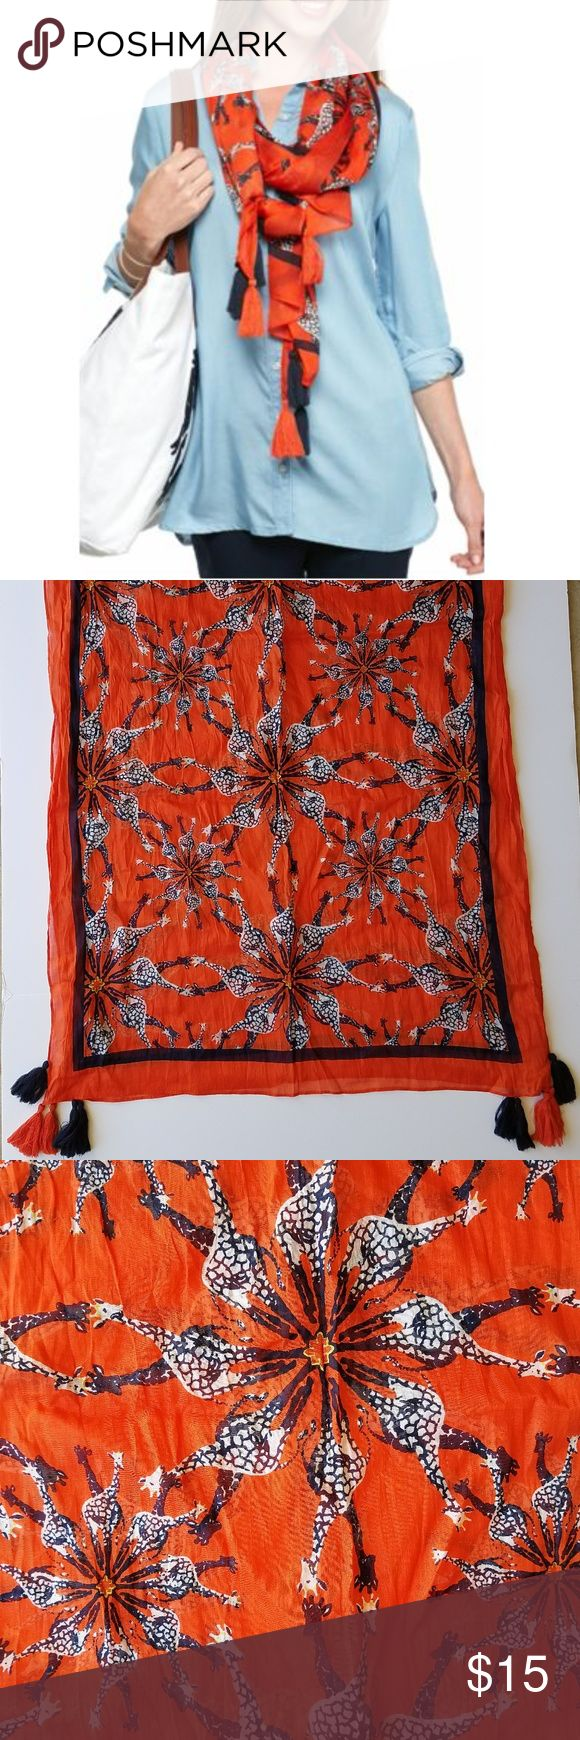 """Crown & Ivy Giraffe Medallion Scarf Amazing orange and navy Giraffe Medallion scarf from Crown and Ivy! Awesome giraffe print with tassels! This light weight scarf is perfect for layering anytime of year! The tassel details top of this standout piece! Approx 32""""W x 75""""L Crown & Ivy Accessories Scarves & Wraps"""